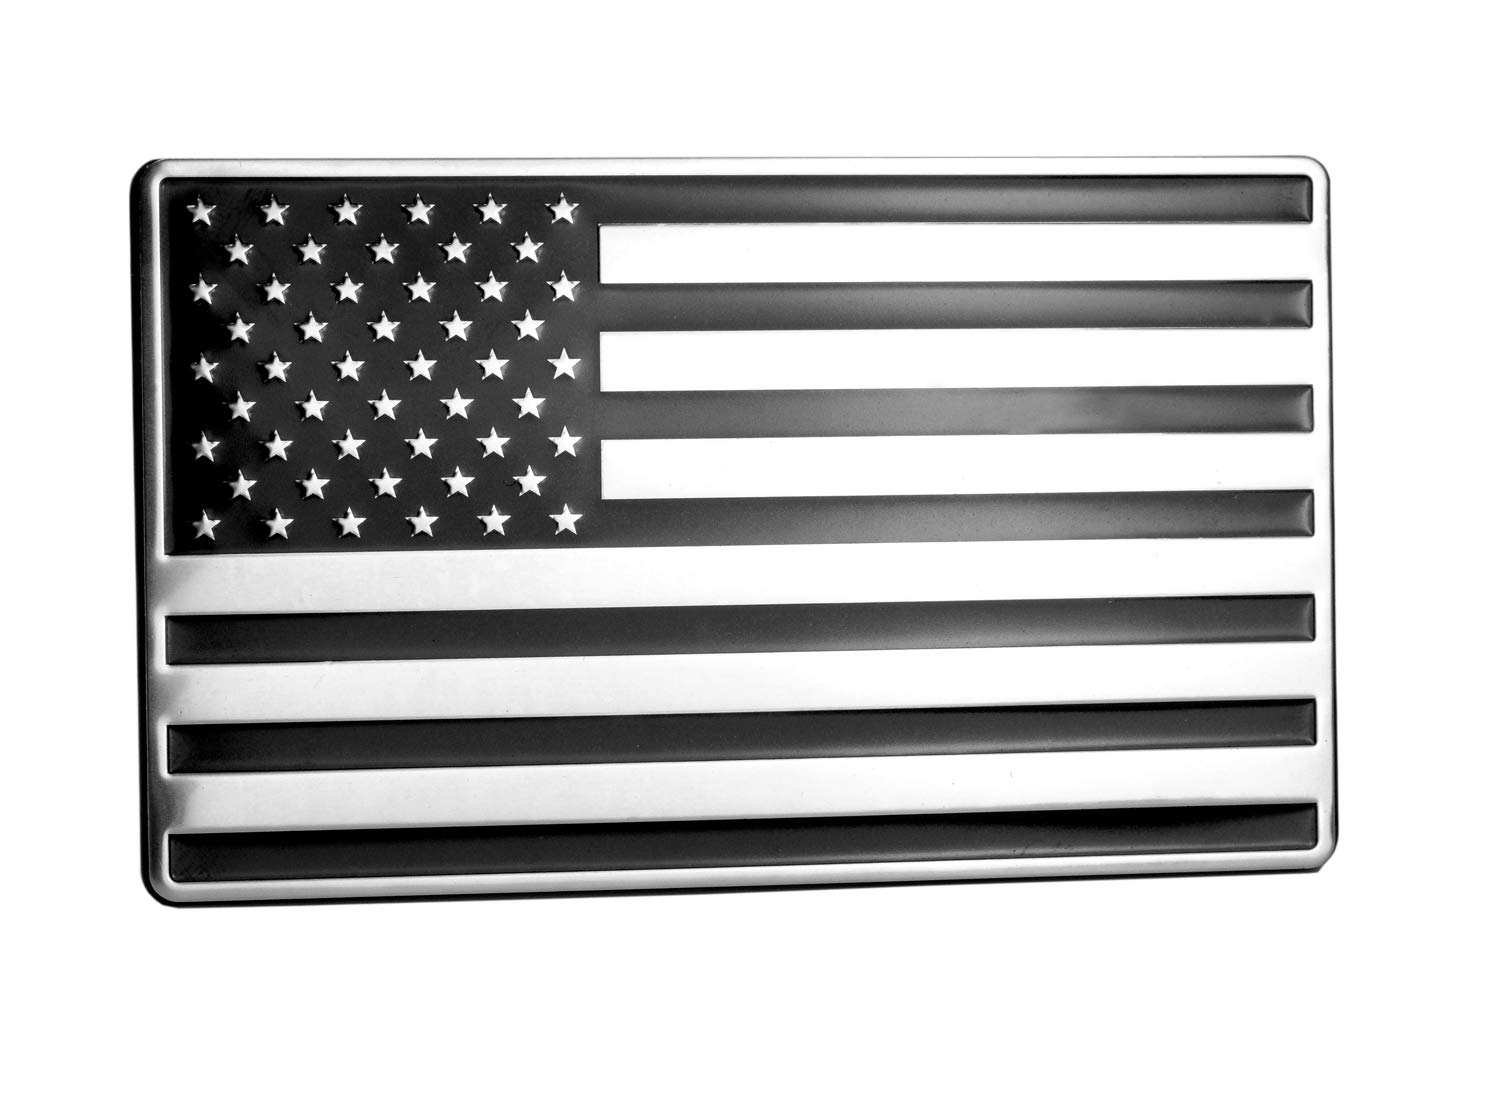 LFPartS USA US American Flag Emblem Metal Trailer Hitch Cover Fits 2 Receivers, Black /& Chrome with Thin Blue line